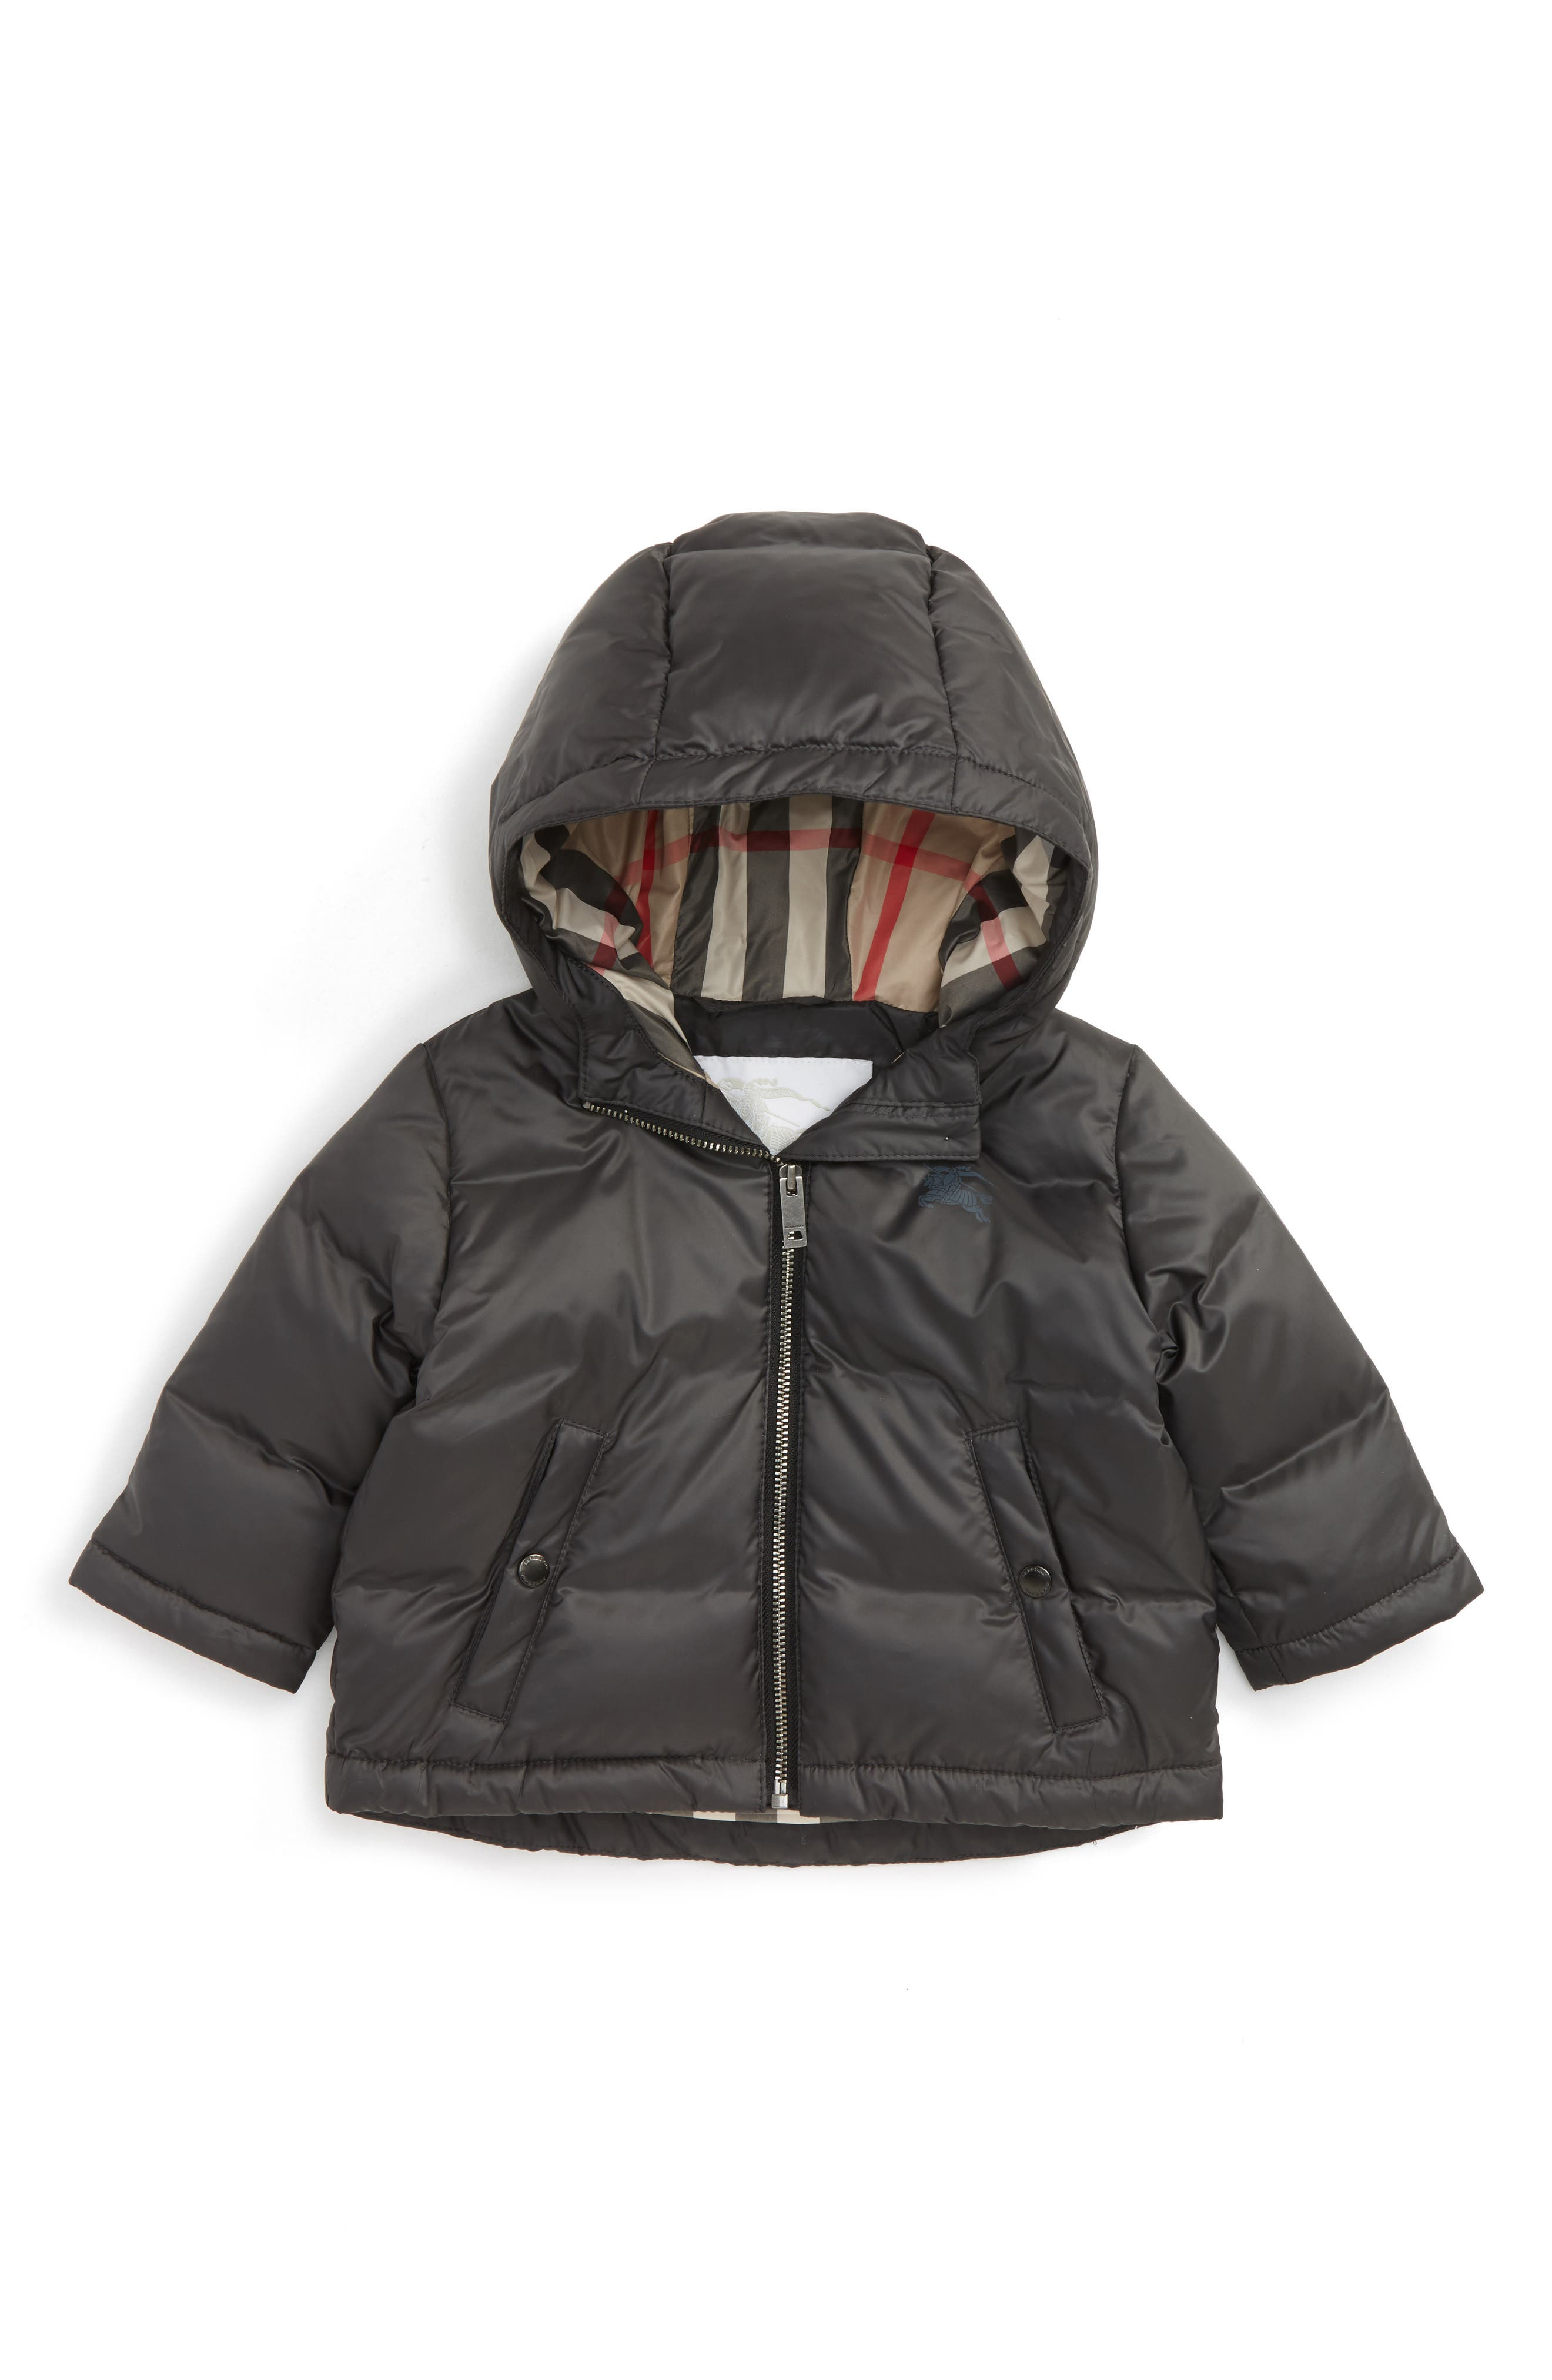 Main Image - Burberry Rio Hooded Down Puffer Jacket (Baby)